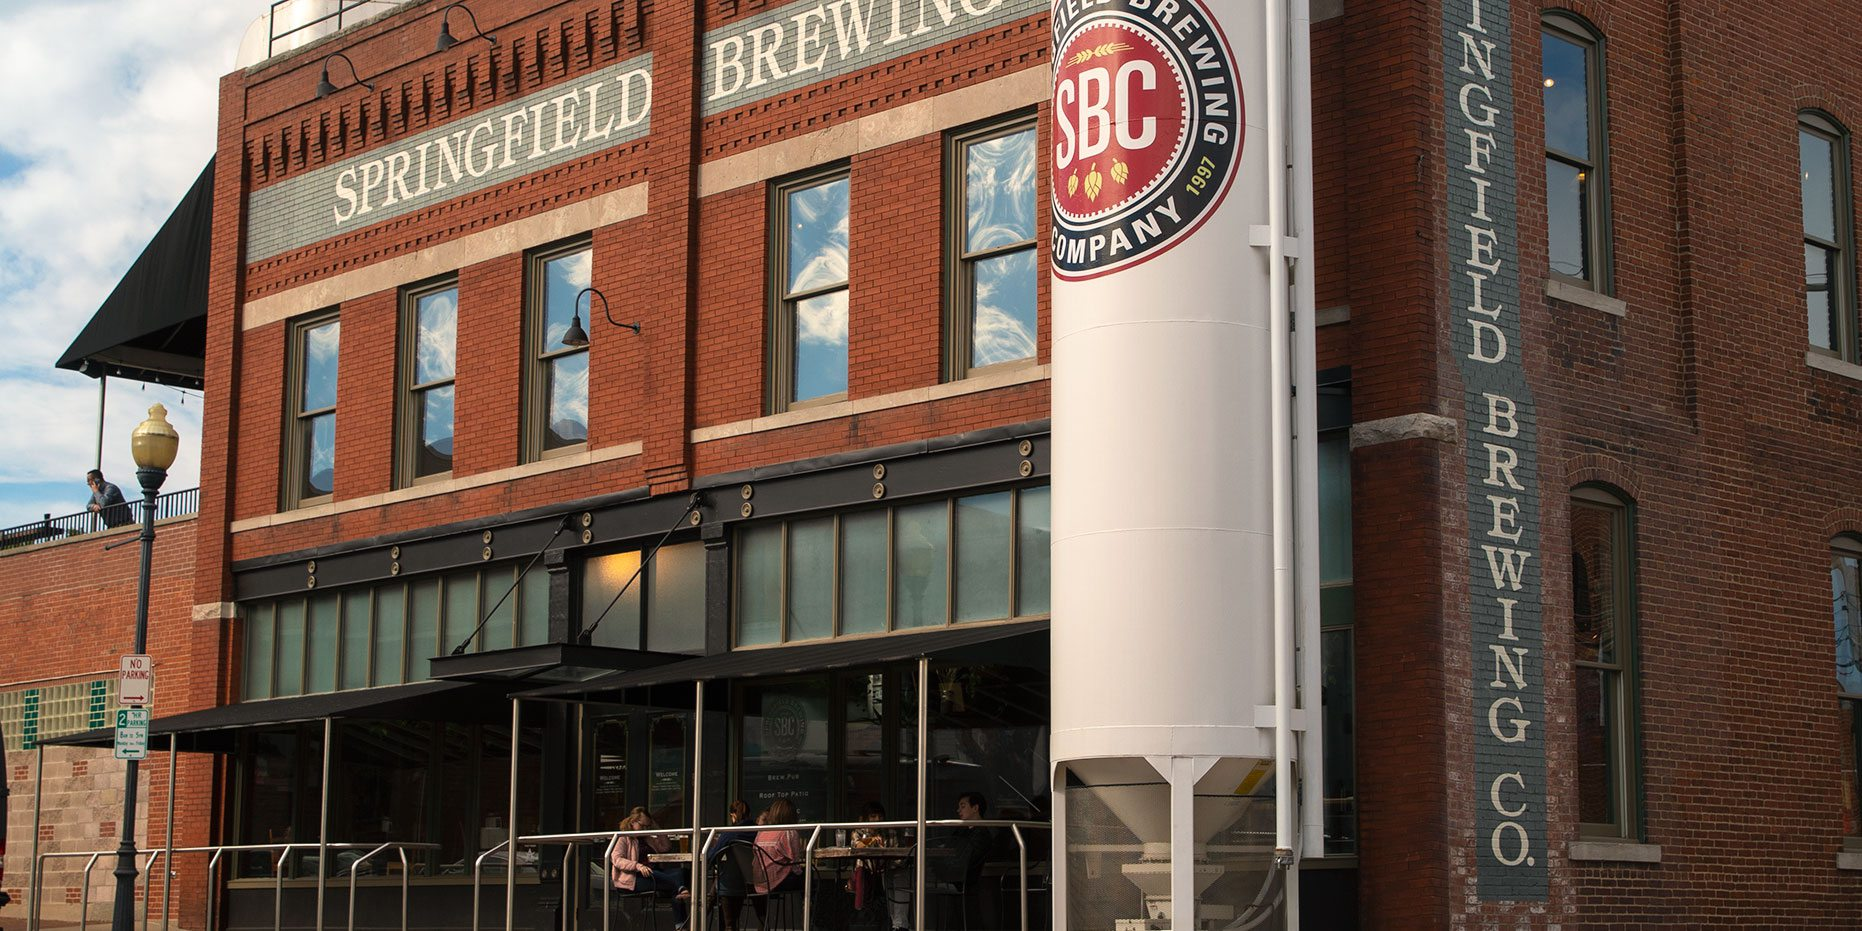 Springfield Brew Co in downtown Springfield MO